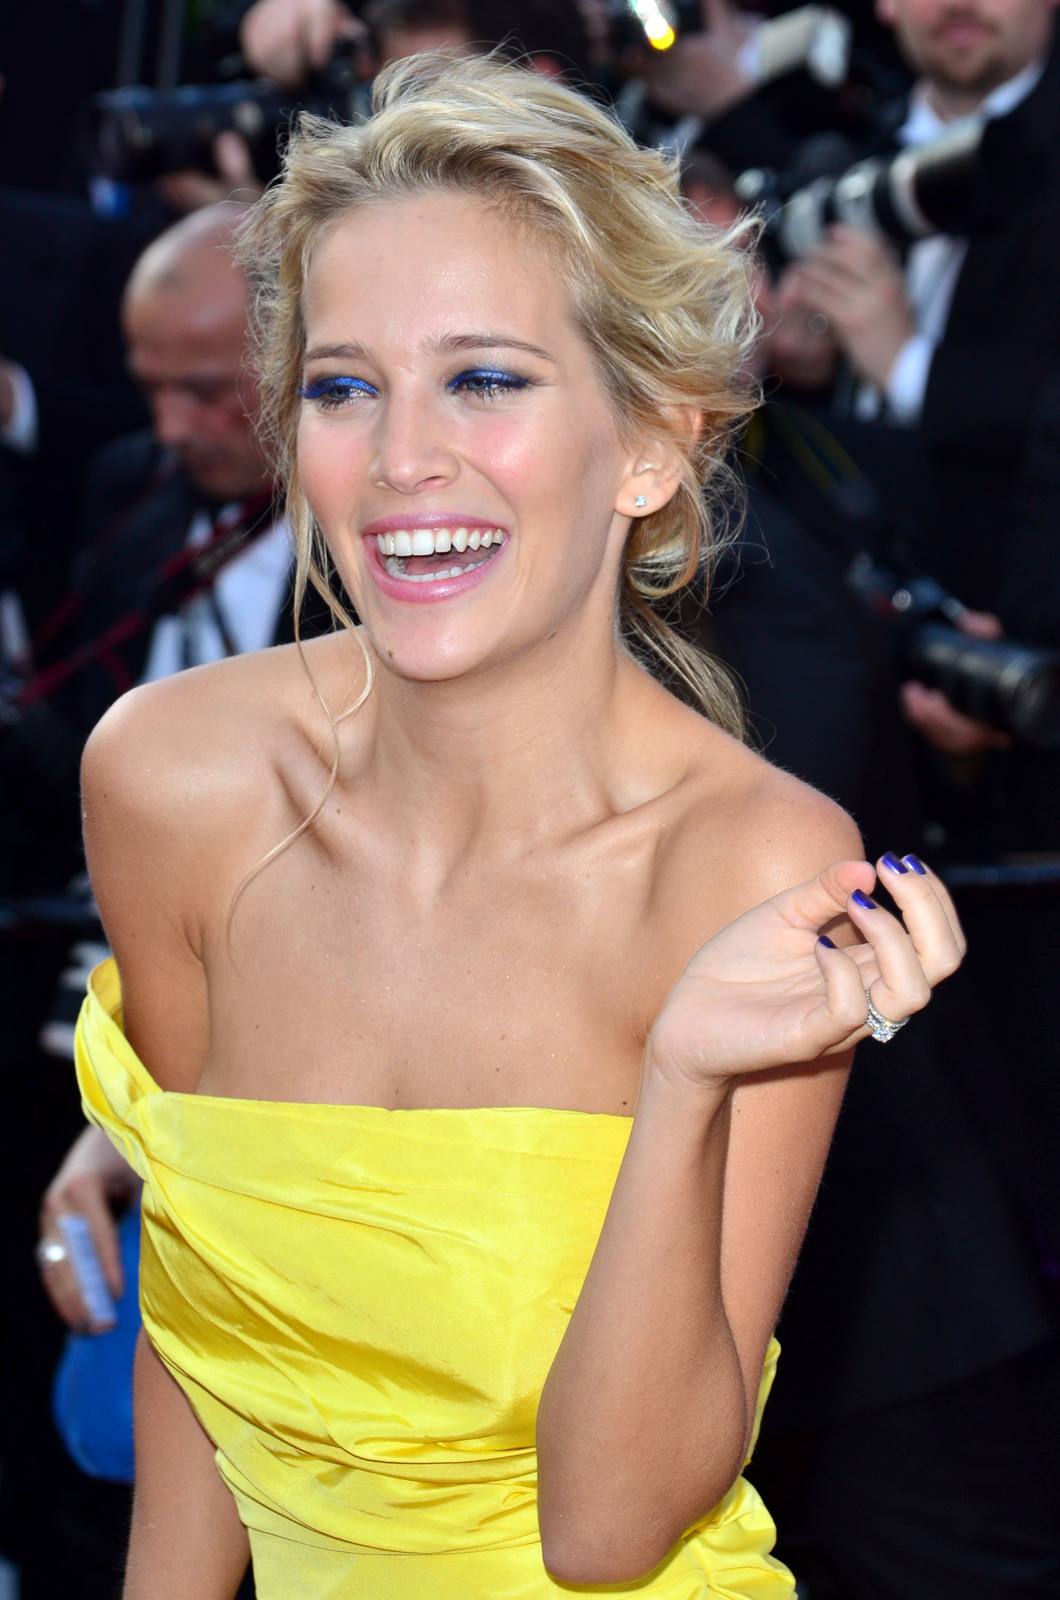 Luisana Lopilato Photo Gallery